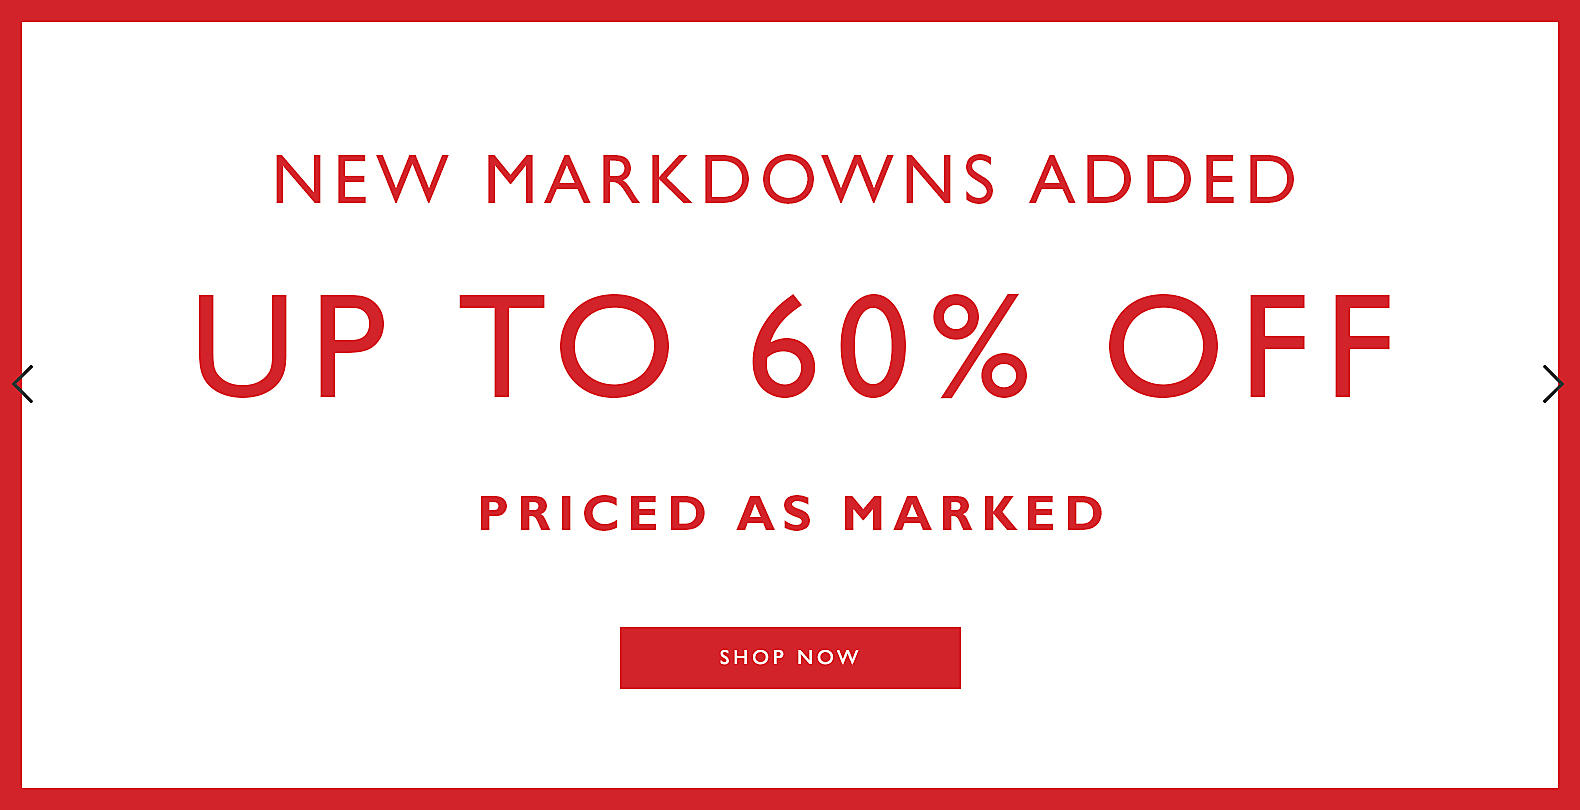 Save up to 60% Off. Priced as marked.